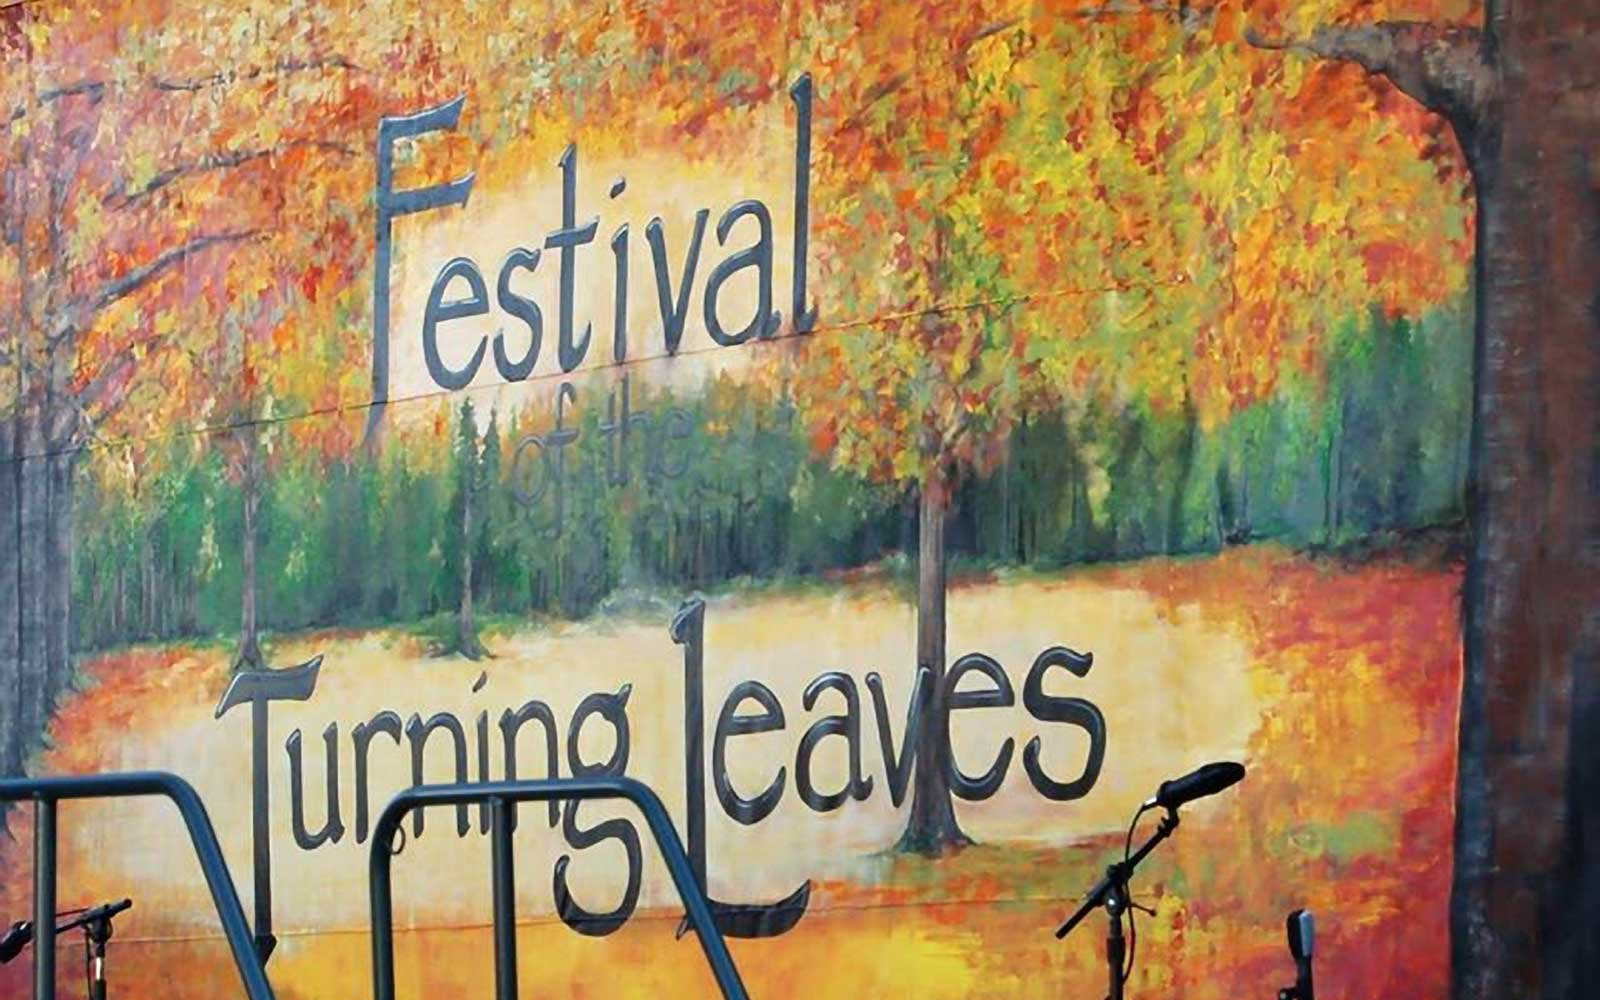 Turning Leaves Festival in Indiana